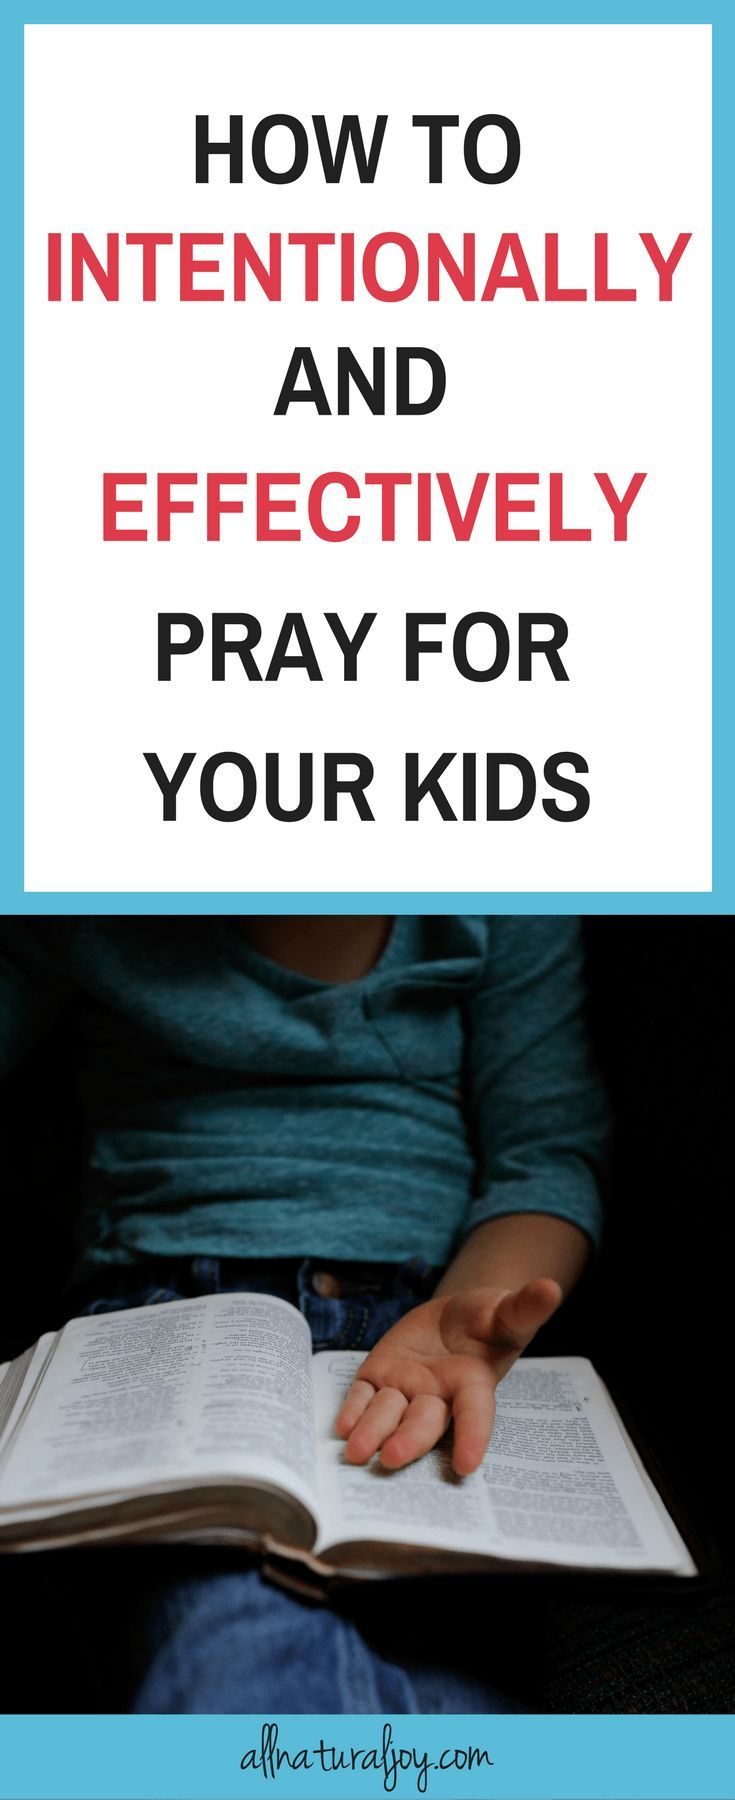 As parents, one of the greatest responsibilities we have is to effectively and intentionally pray for our kids. I've developed a plan to help you! And it's as easy as pie!